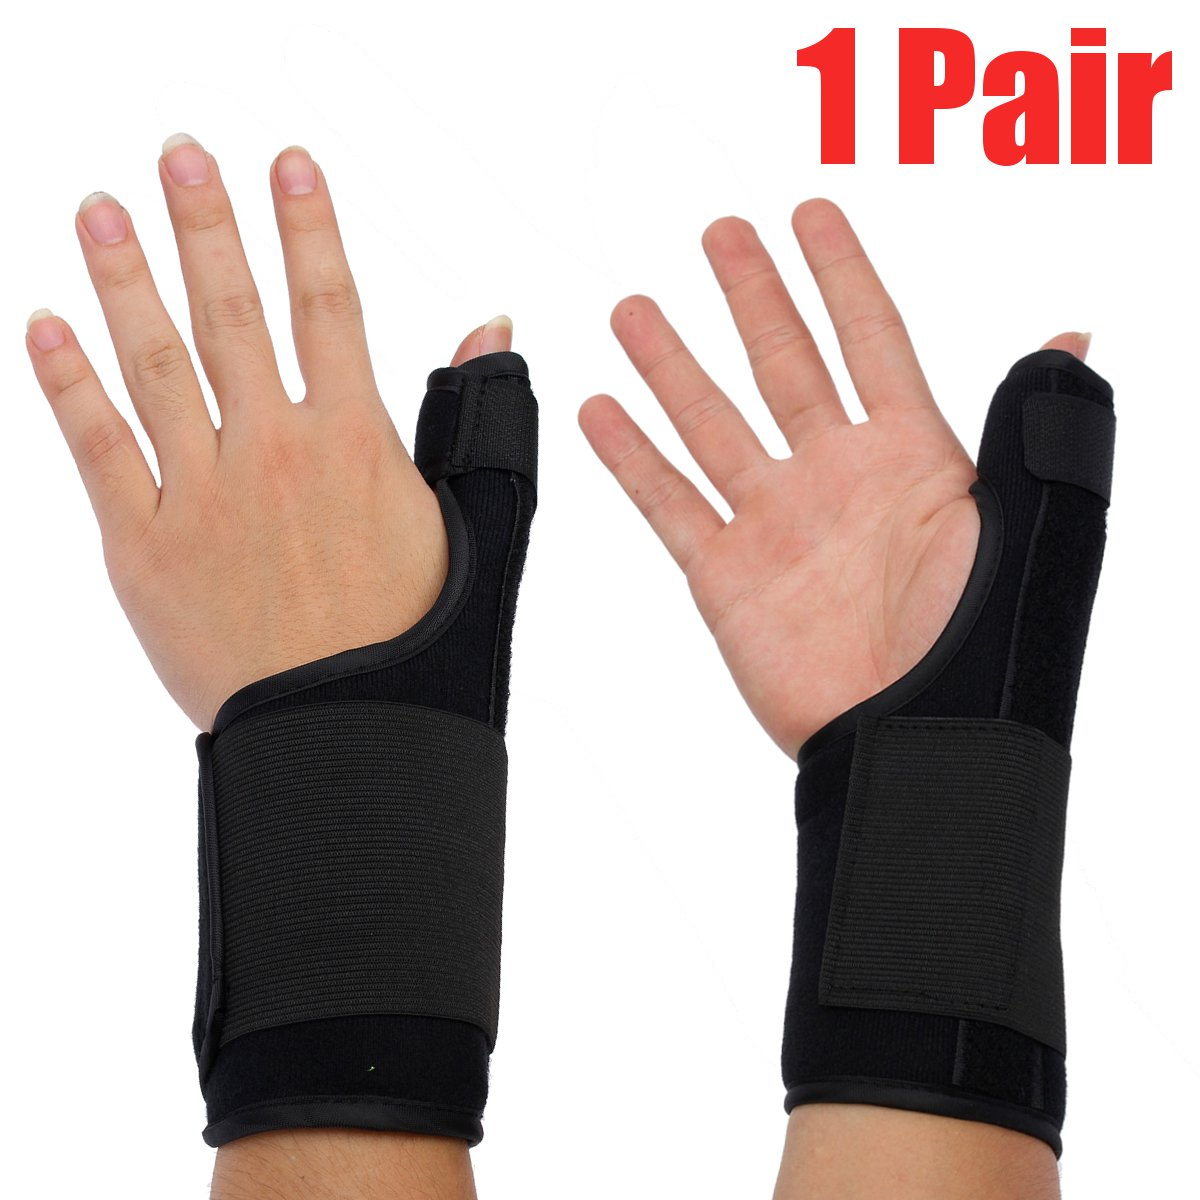 2X Arthritis Thumb Splint Thumb Spica Support Brace for Pain Sprains Strains Arthritis Carpal Tunnel Trigger Thumb Immobilizer Wrist Strap Left or Right Hand